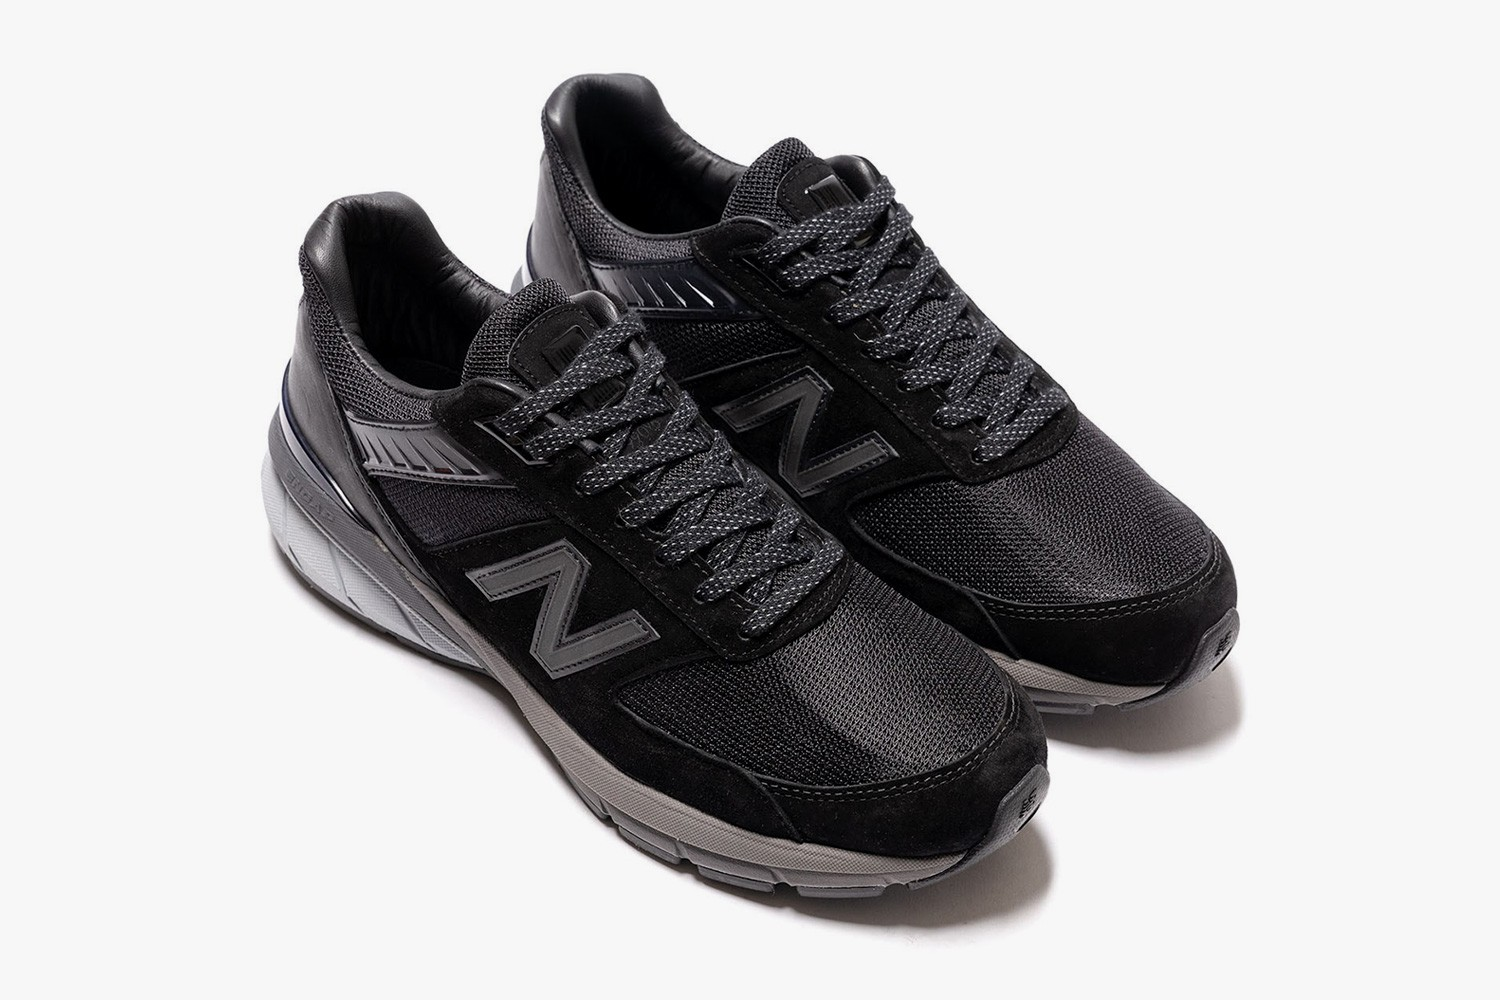 HAVEN x New Balance M990v5 Release Info